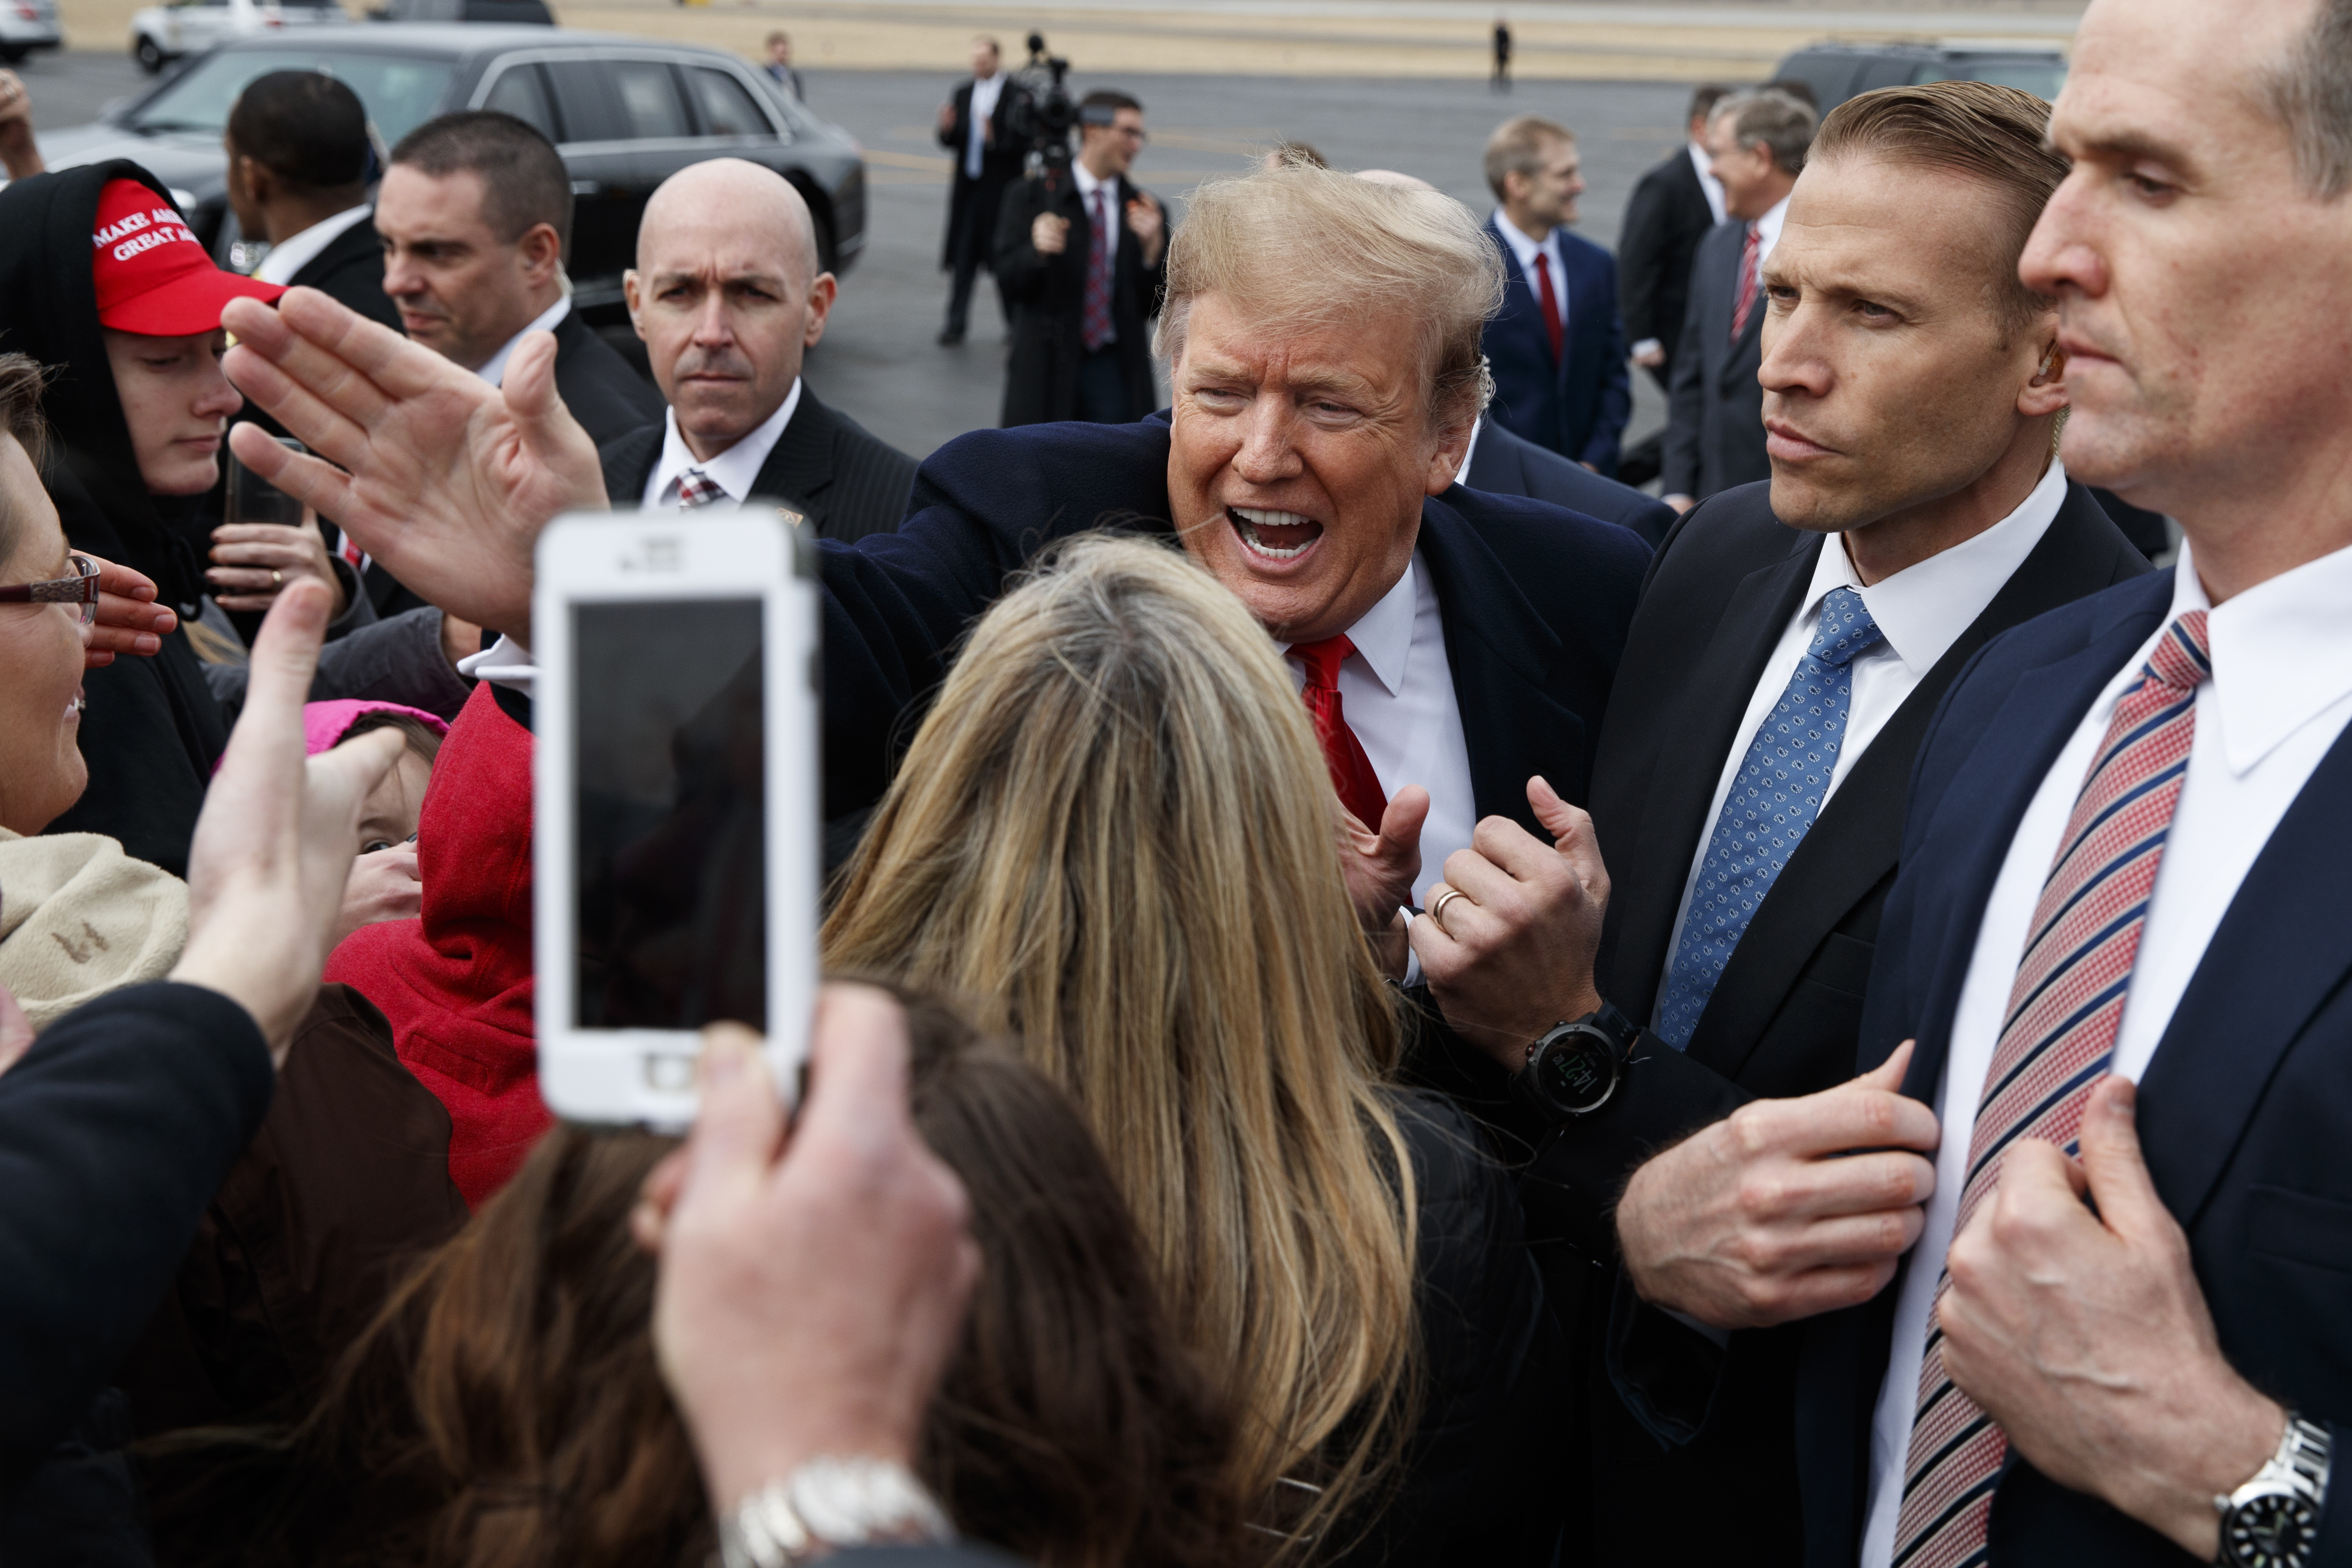 President Donald Trump shakes hands with supporters as he arrives at Lima Allen County Airport, March 20, 2019, in Lima, Ohio.